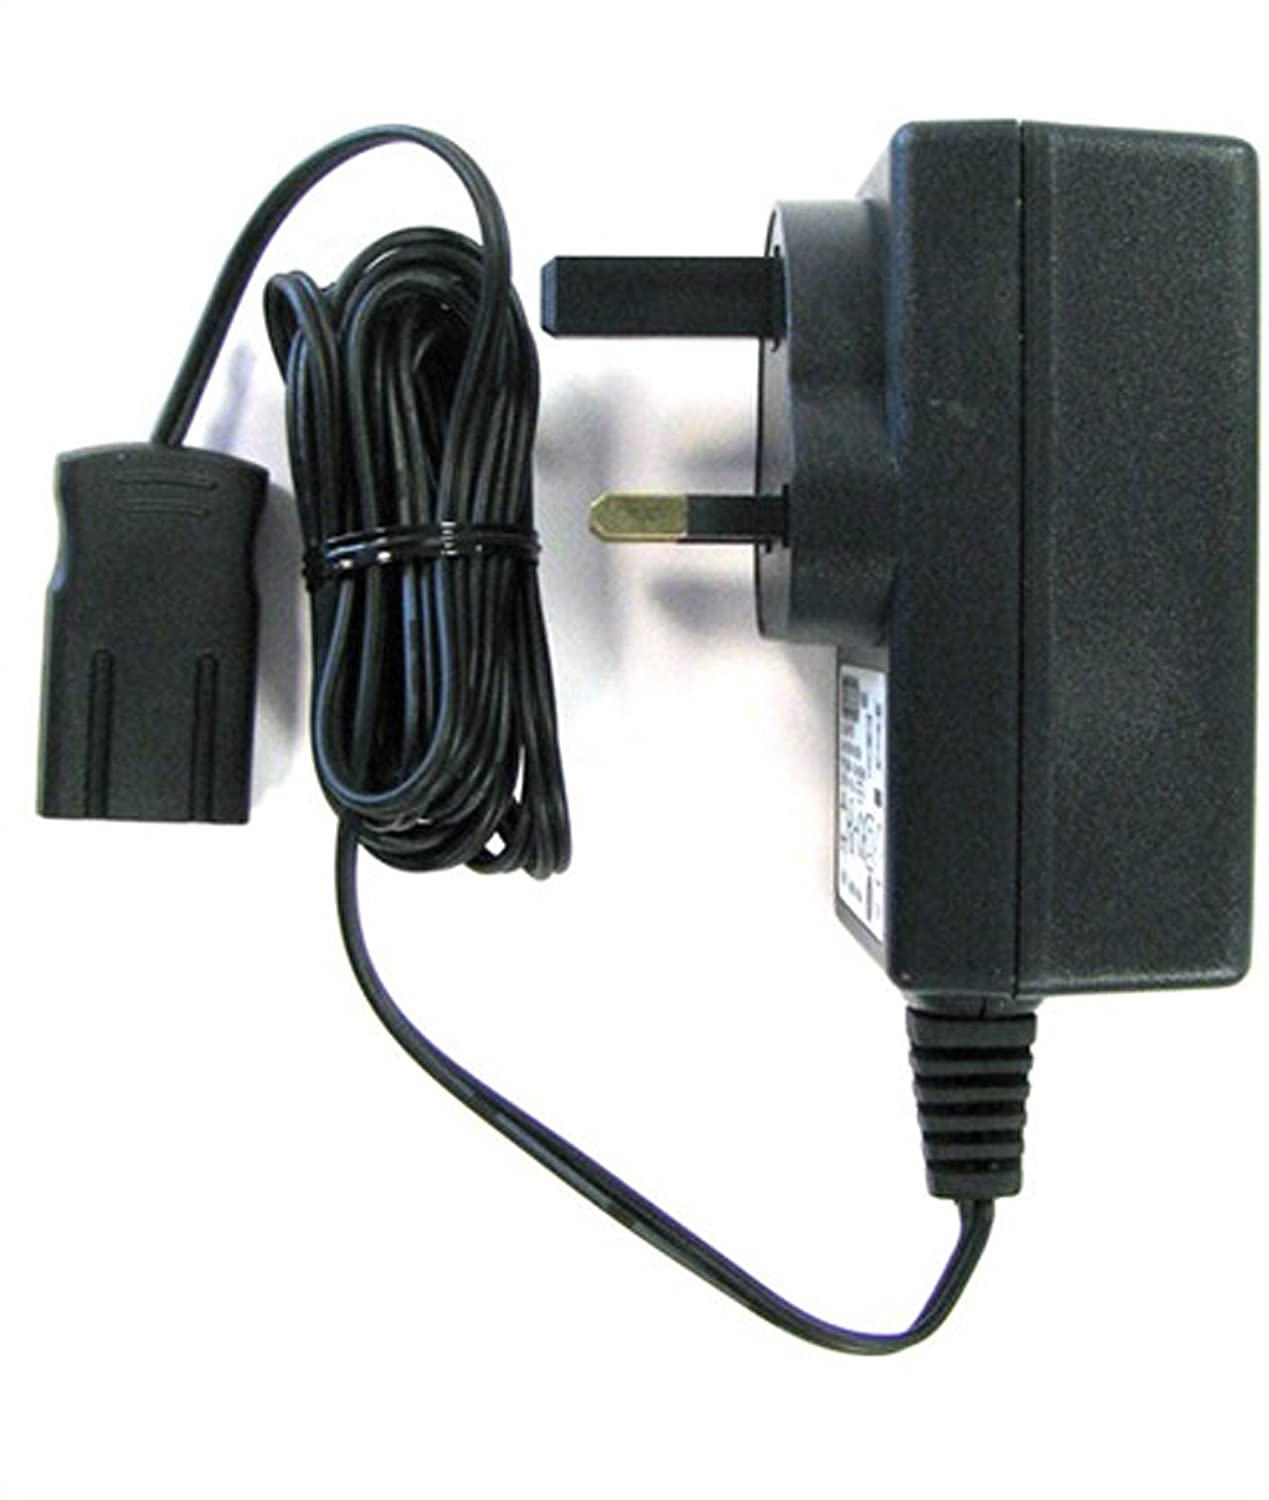 Scalextric Start P9400 Transformer Accessory Scalextric Track and Accessories